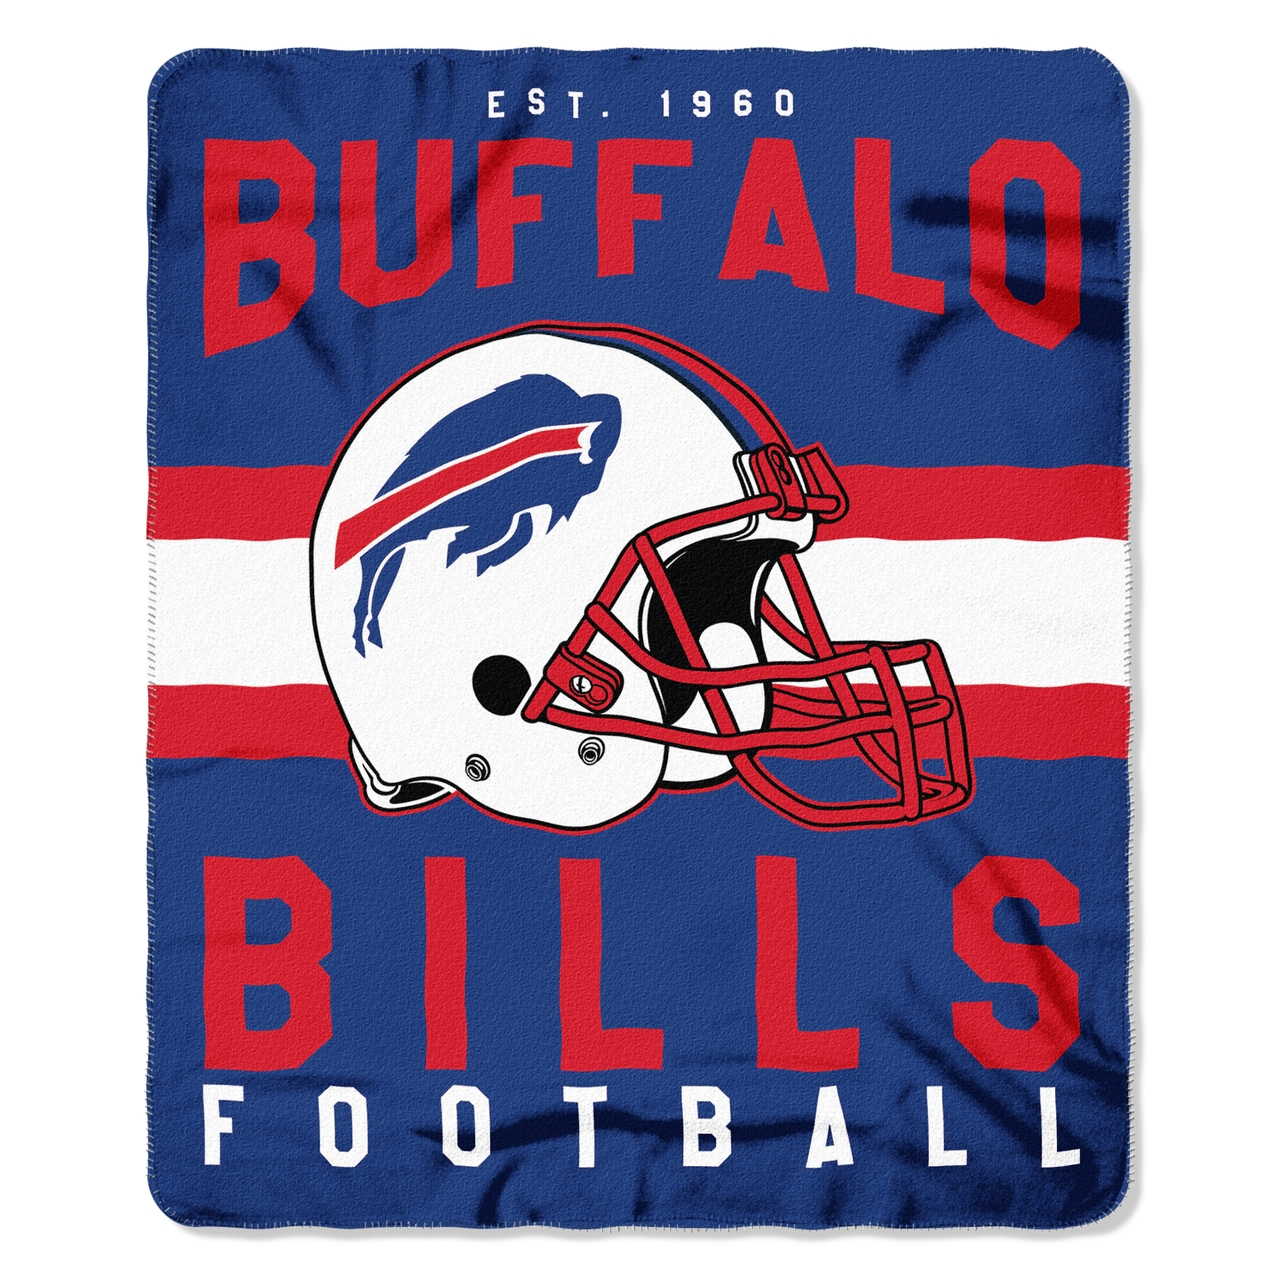 Gifts Fleece - 8791835001 - Buffalo Bills Blanket 50x60 Fleece Singular Design